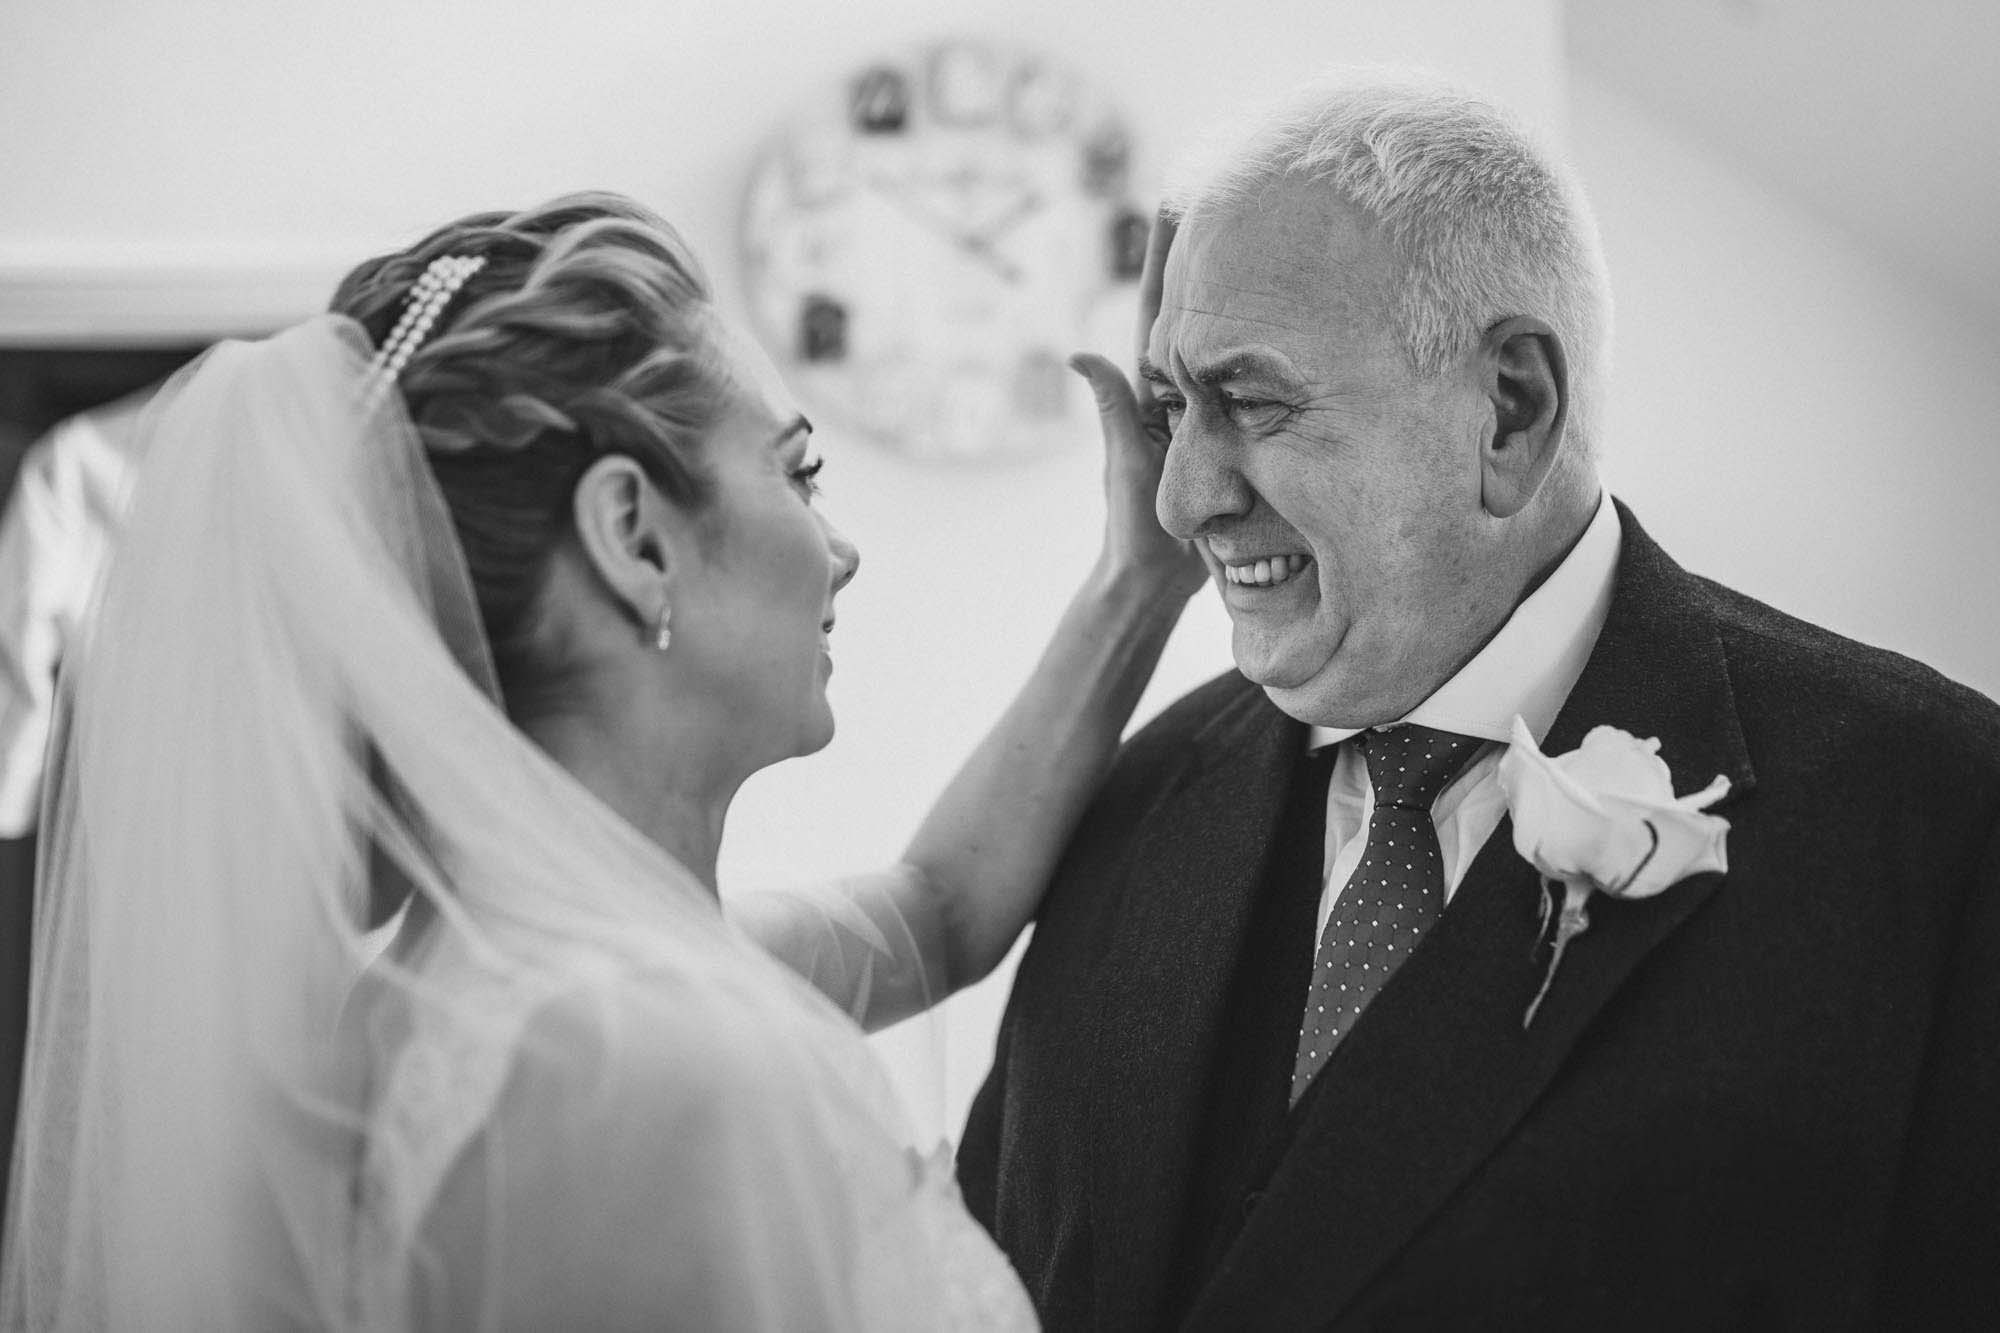 Emotional Wedding Photography Kent Miki Photography